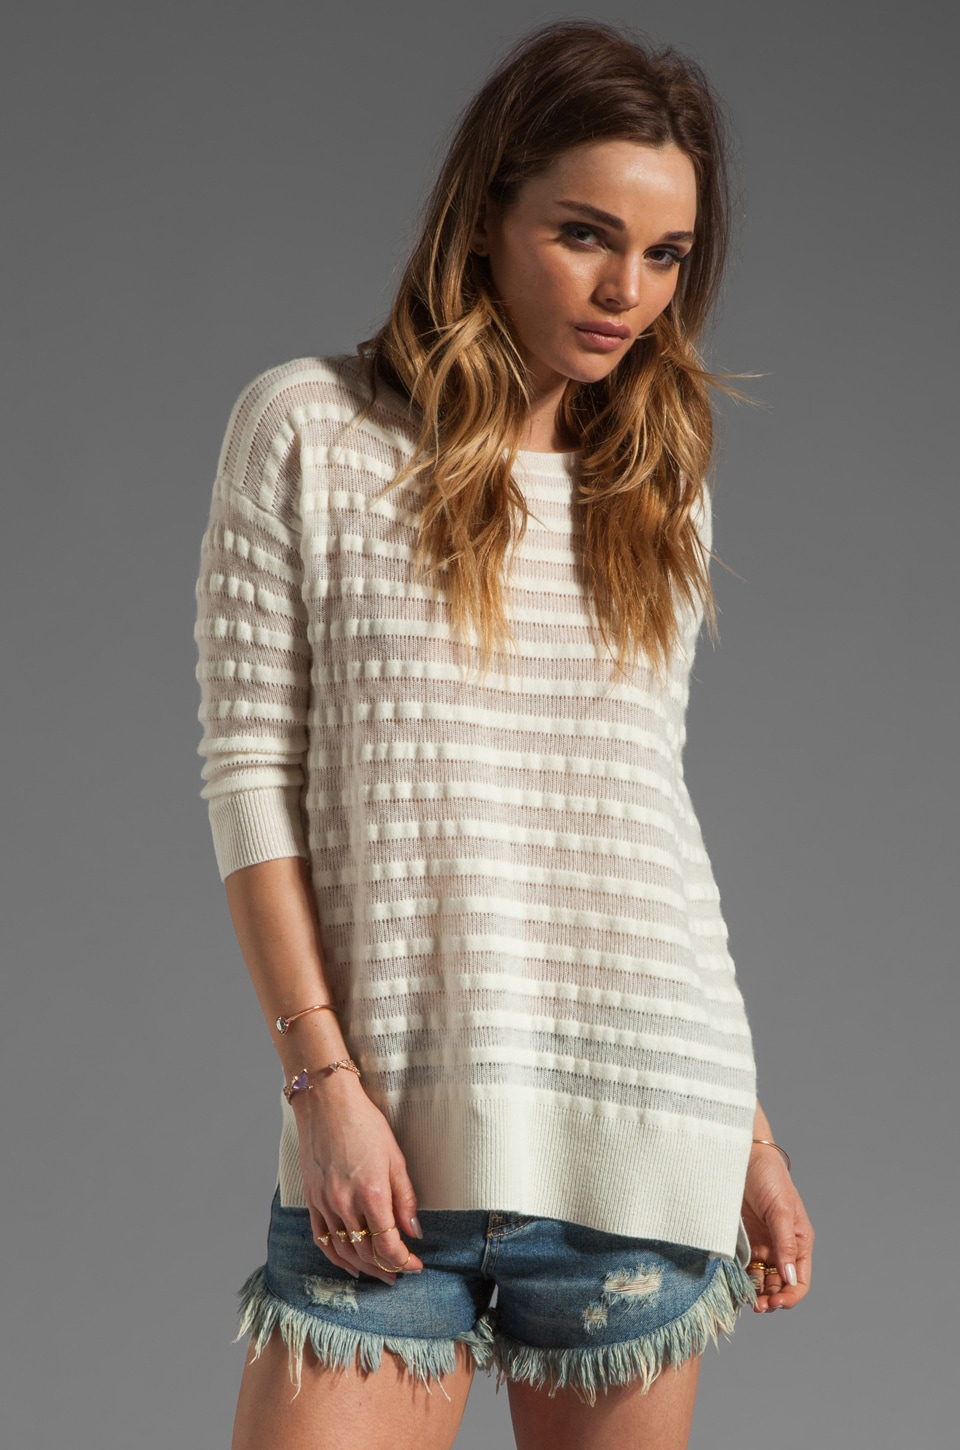 Autumn Cashmere Shadow Stripe Boatneck Sweater in Milk